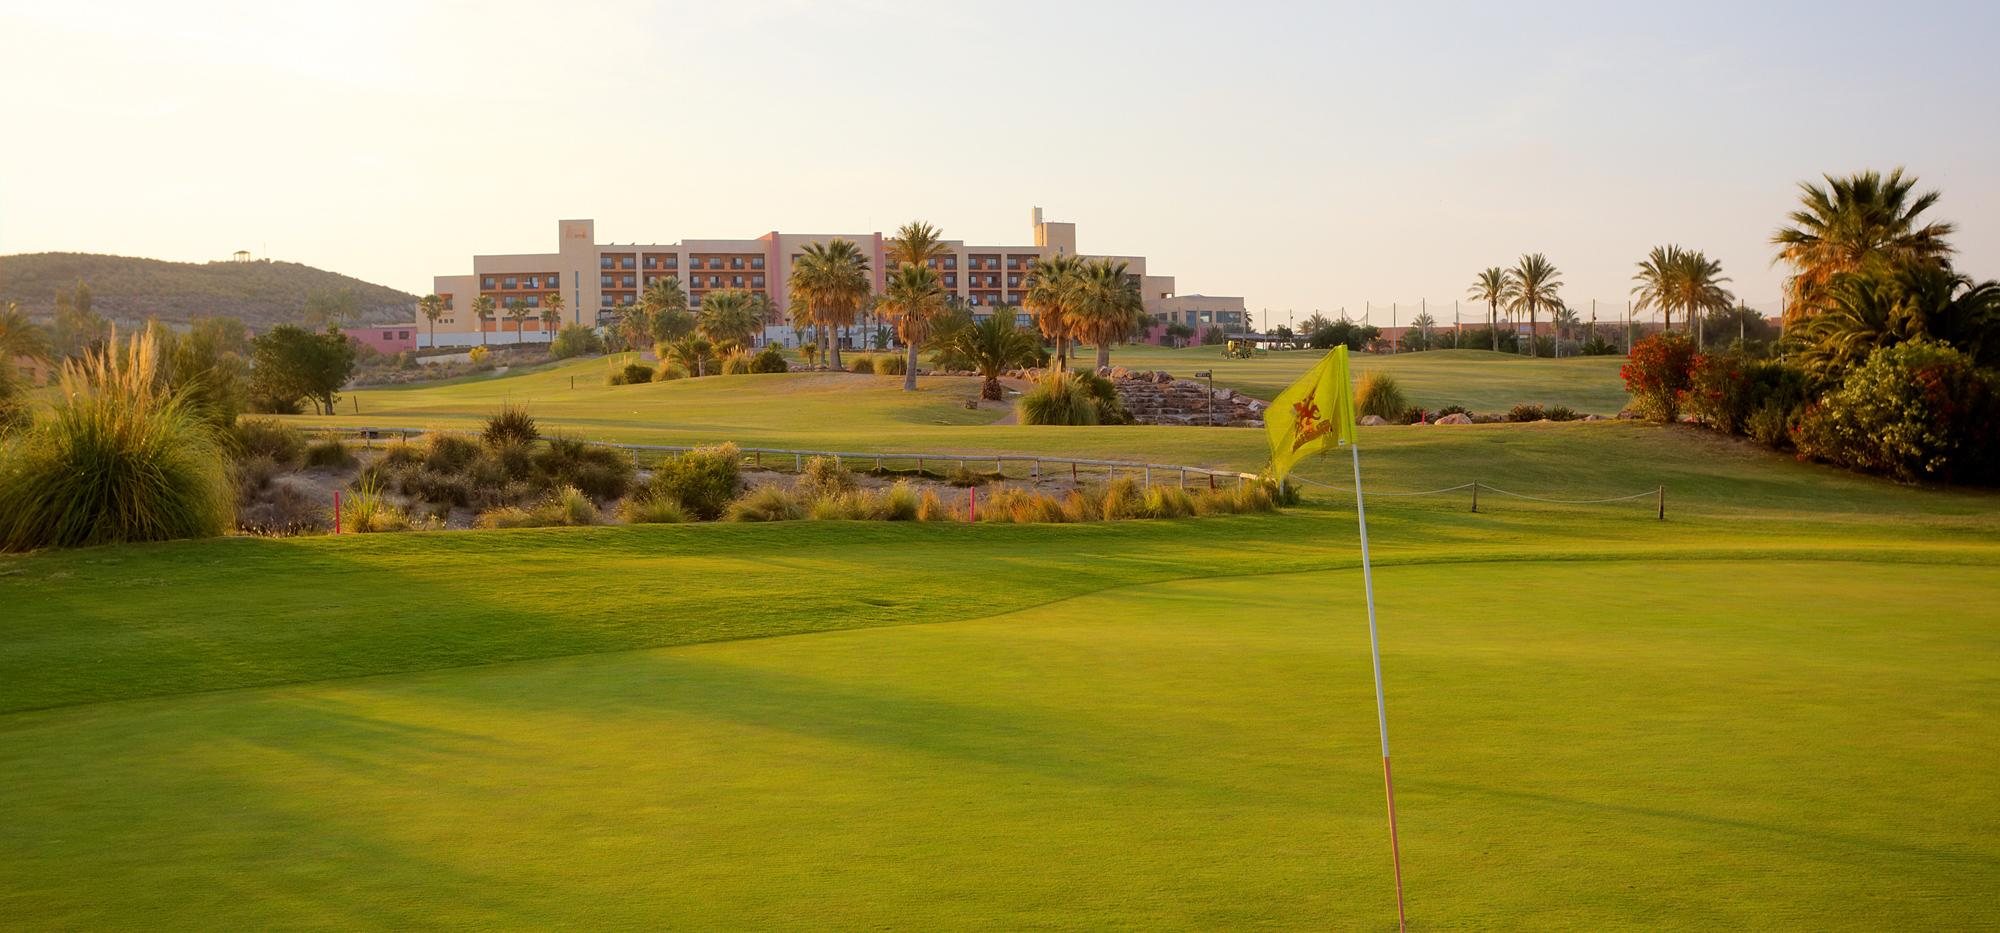 The Valle del Este Golf Course's impressive golf course situated in amazing Costa Almeria.